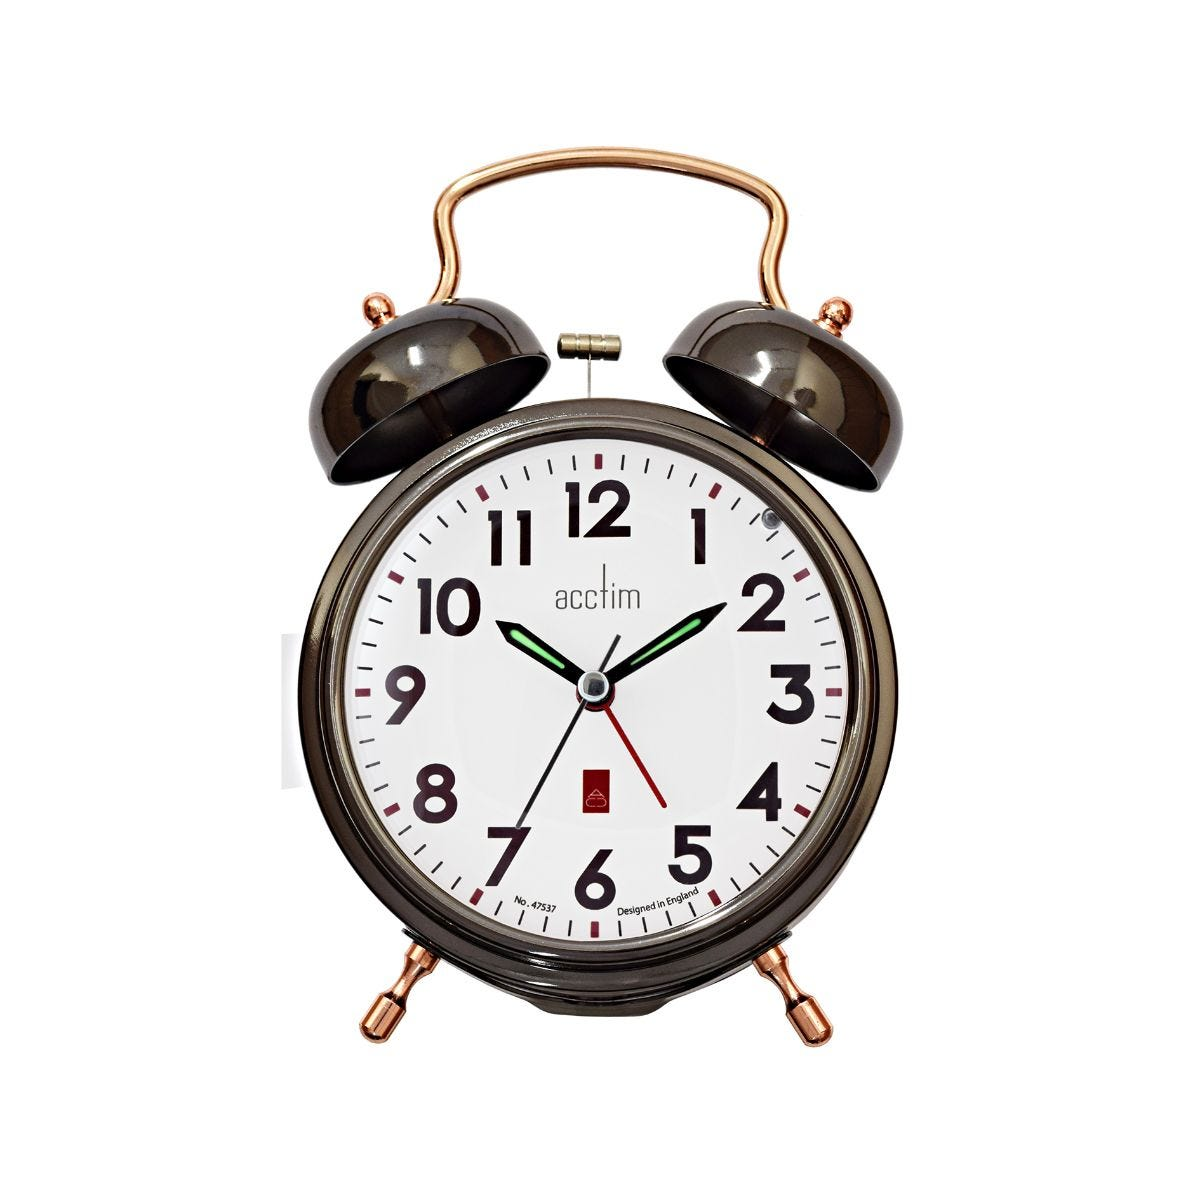 Image of Acctim Rover Bell Alarm Clock, Black